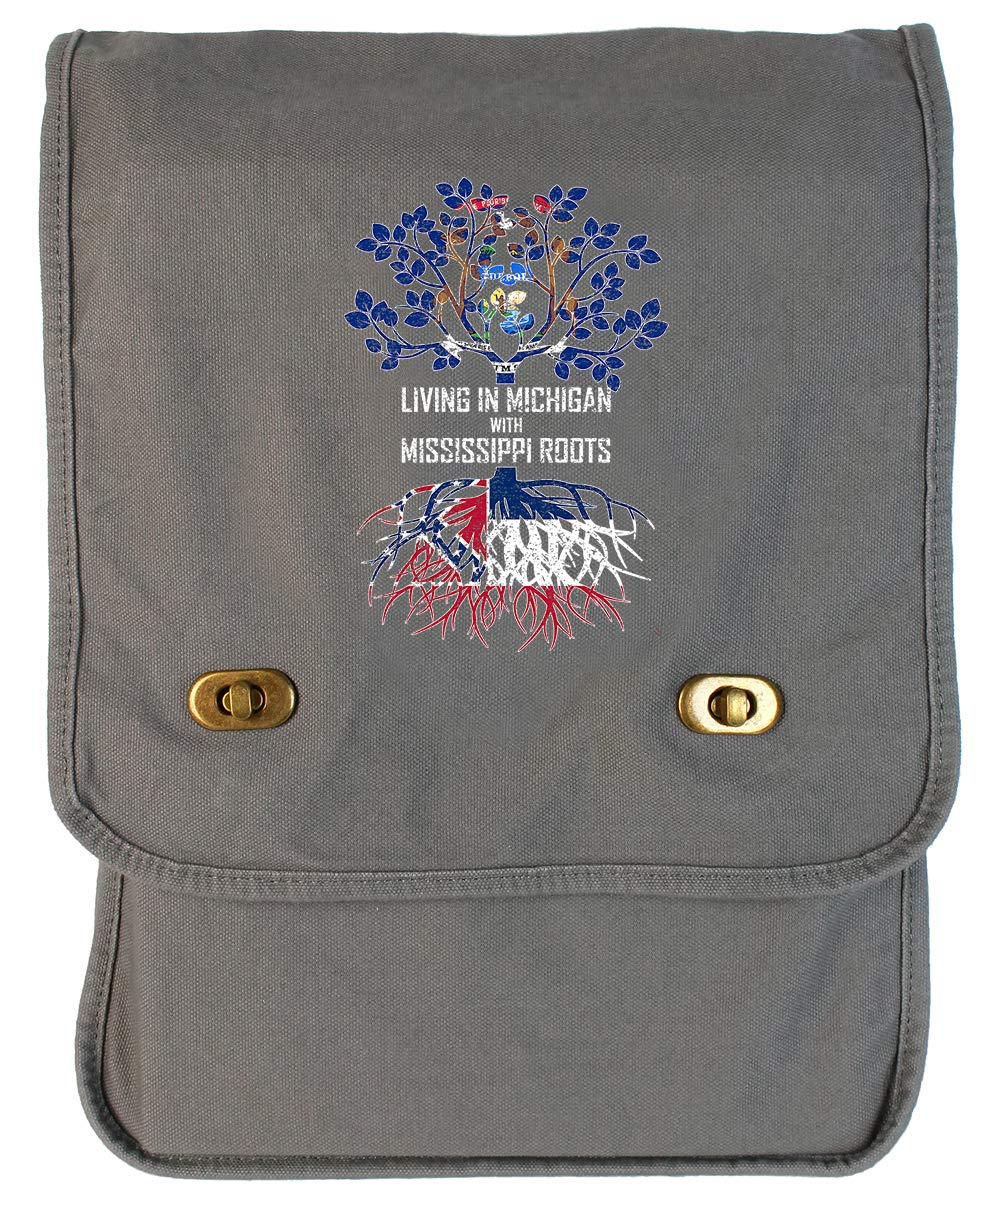 Tenacitee Living In Michigan with Mississippi Roots Grey Brushed Canvas Messenger Bag